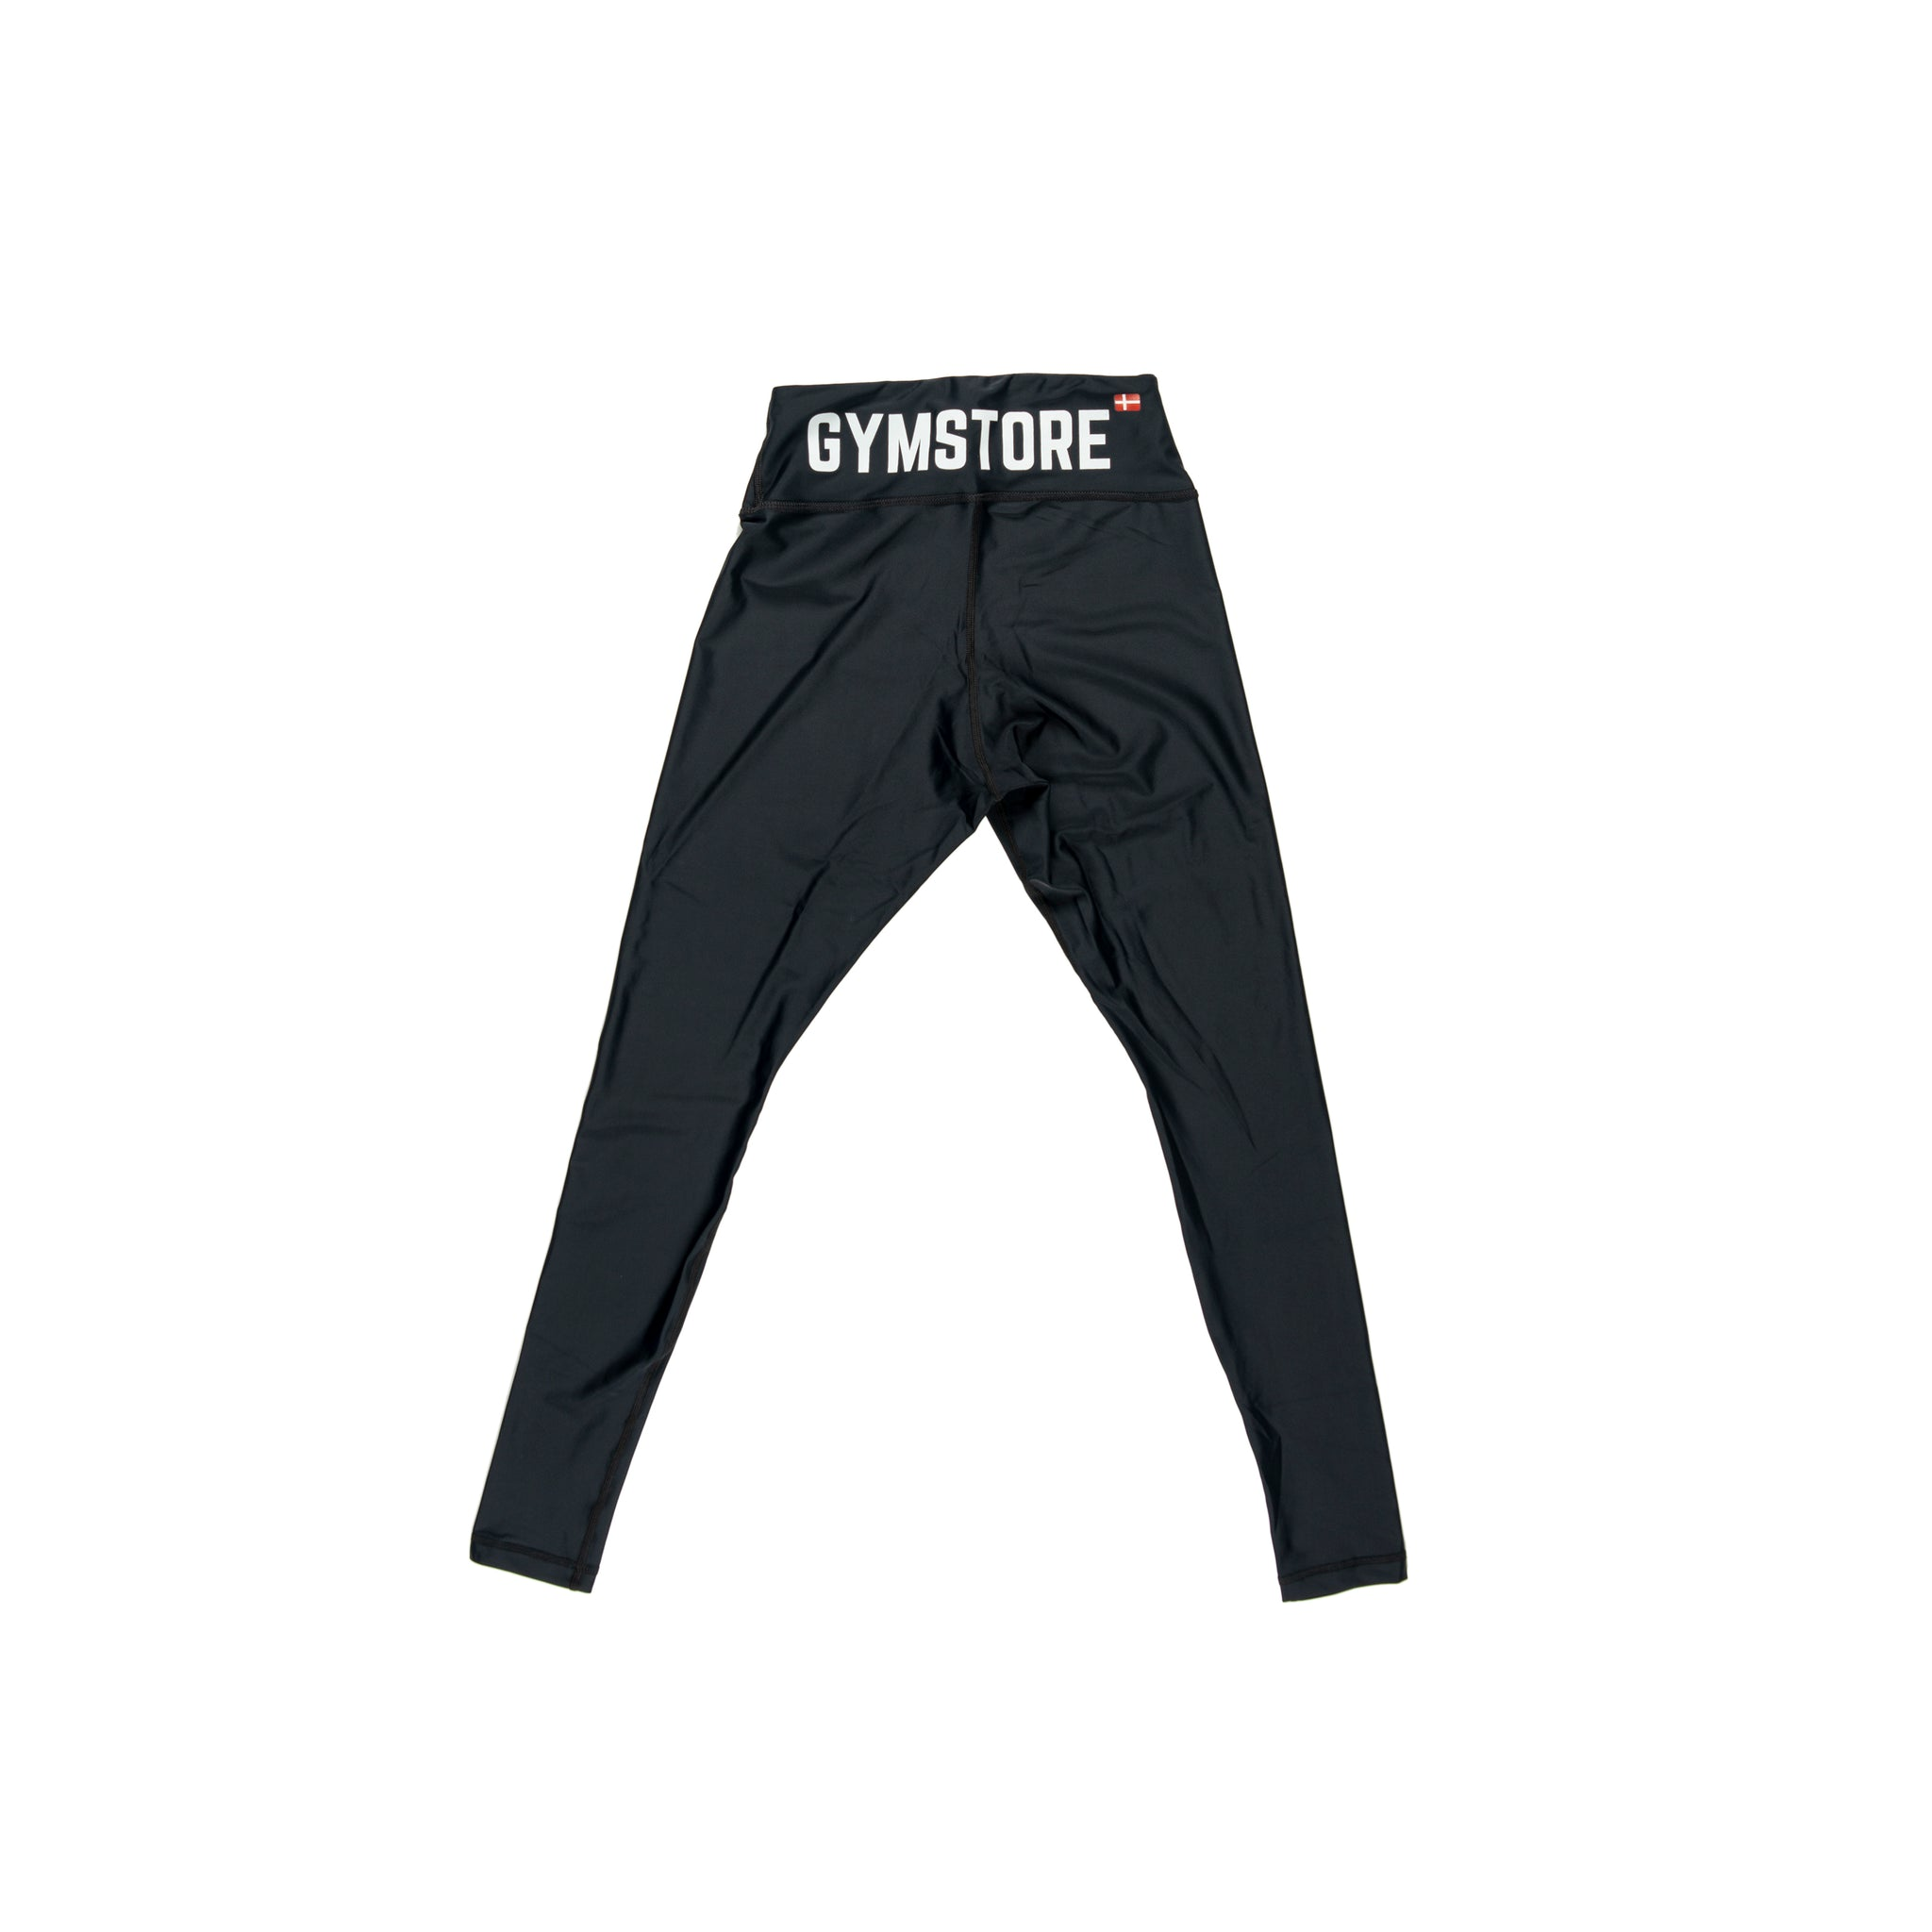 Gymstore Black Legging